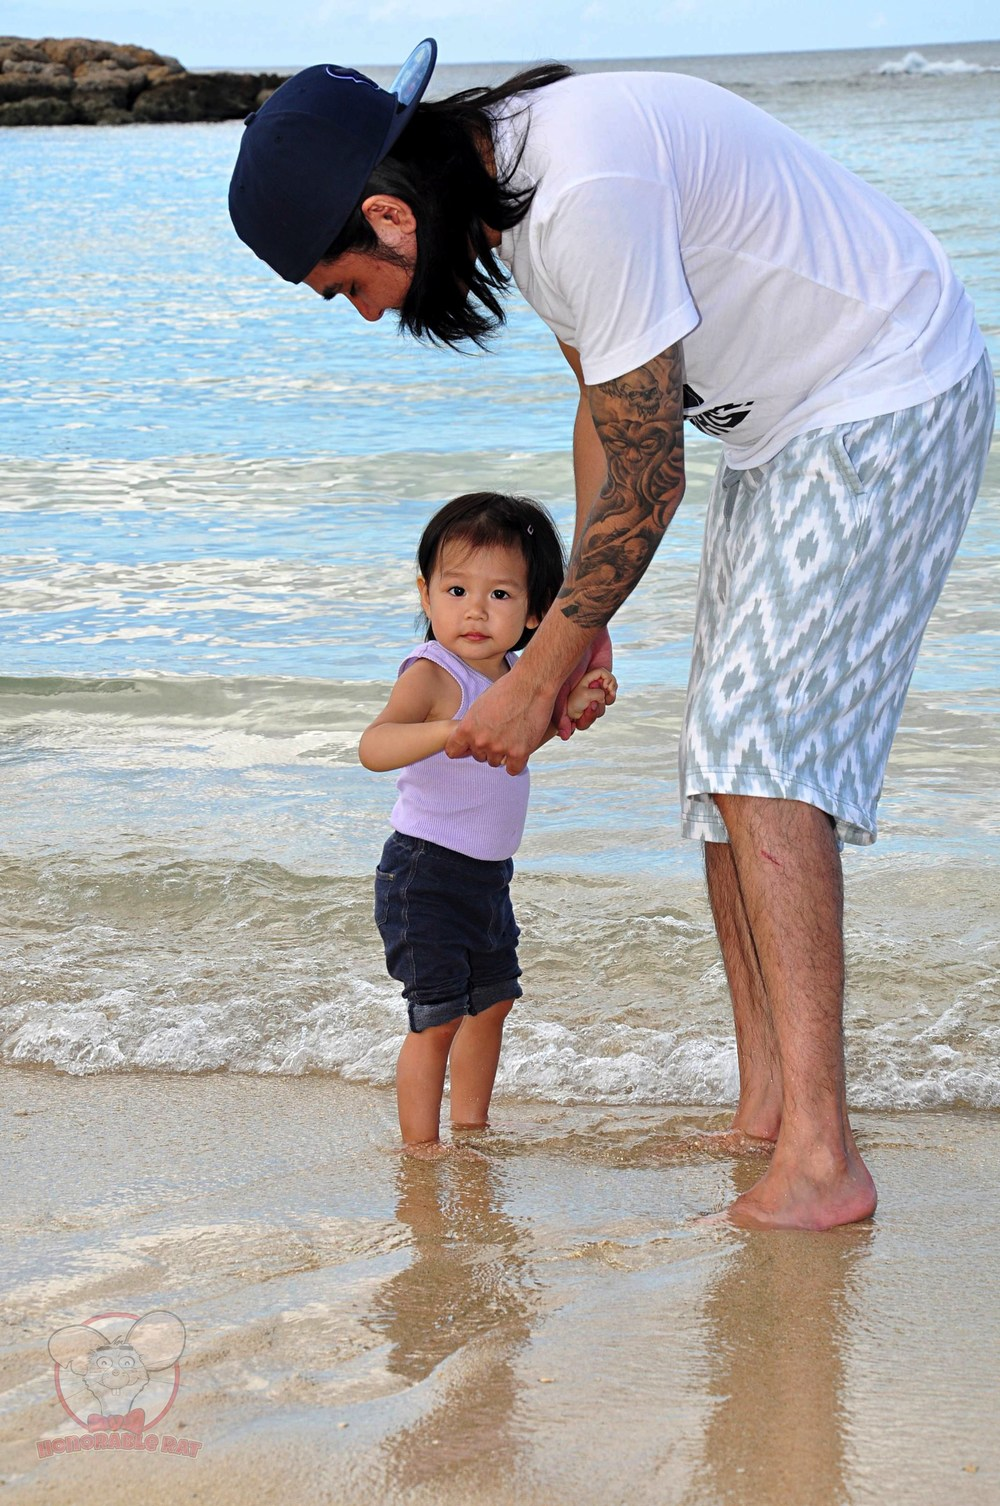 Mahina planting her feet into seawater for the first time